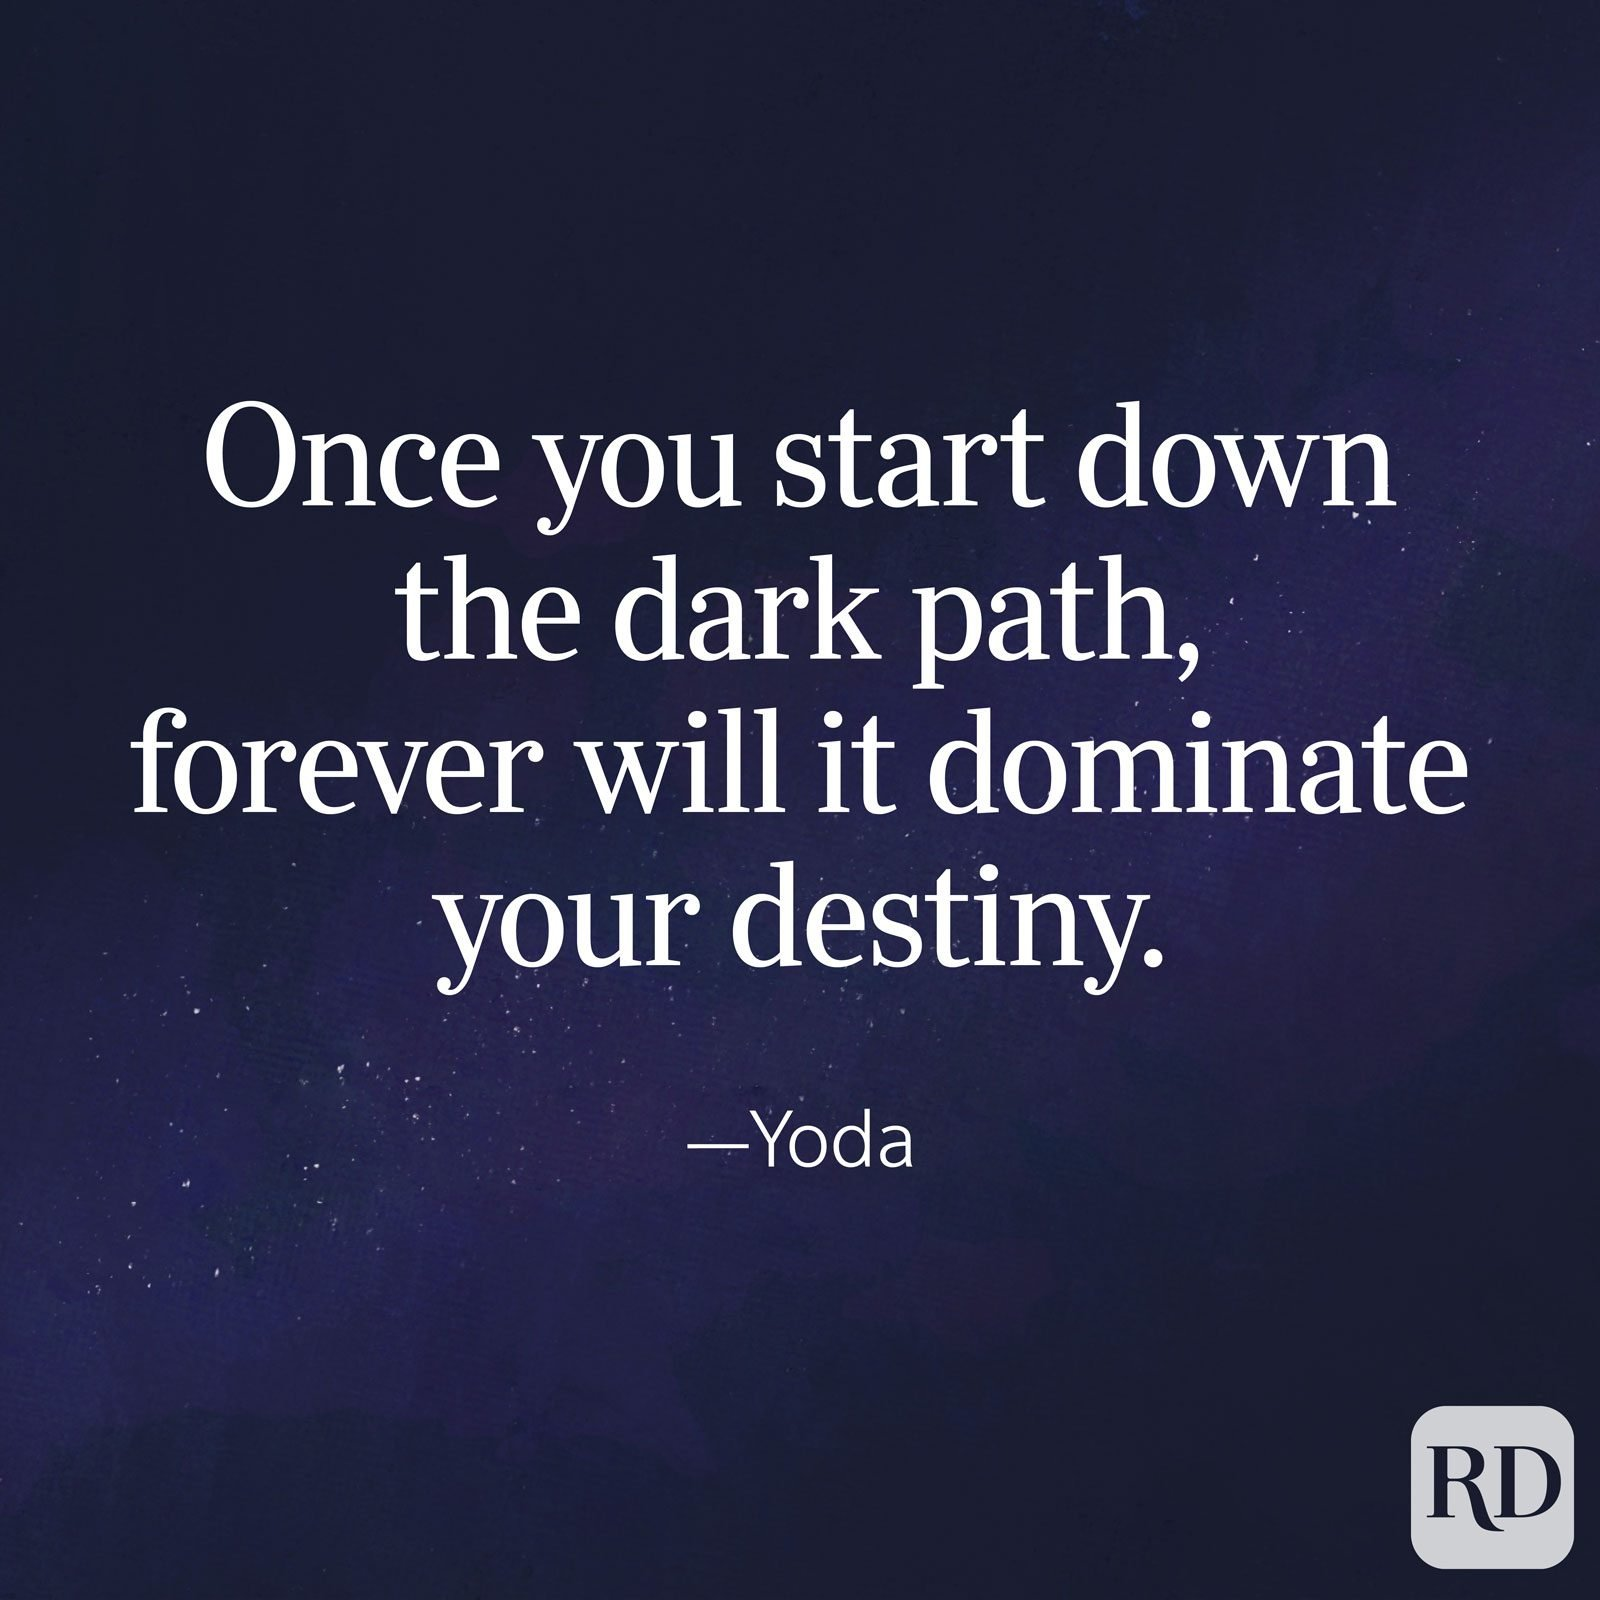 """Once you start down the dark path, forever will it dominate your destiny."" —Yoda, The Empire Strikes Back"